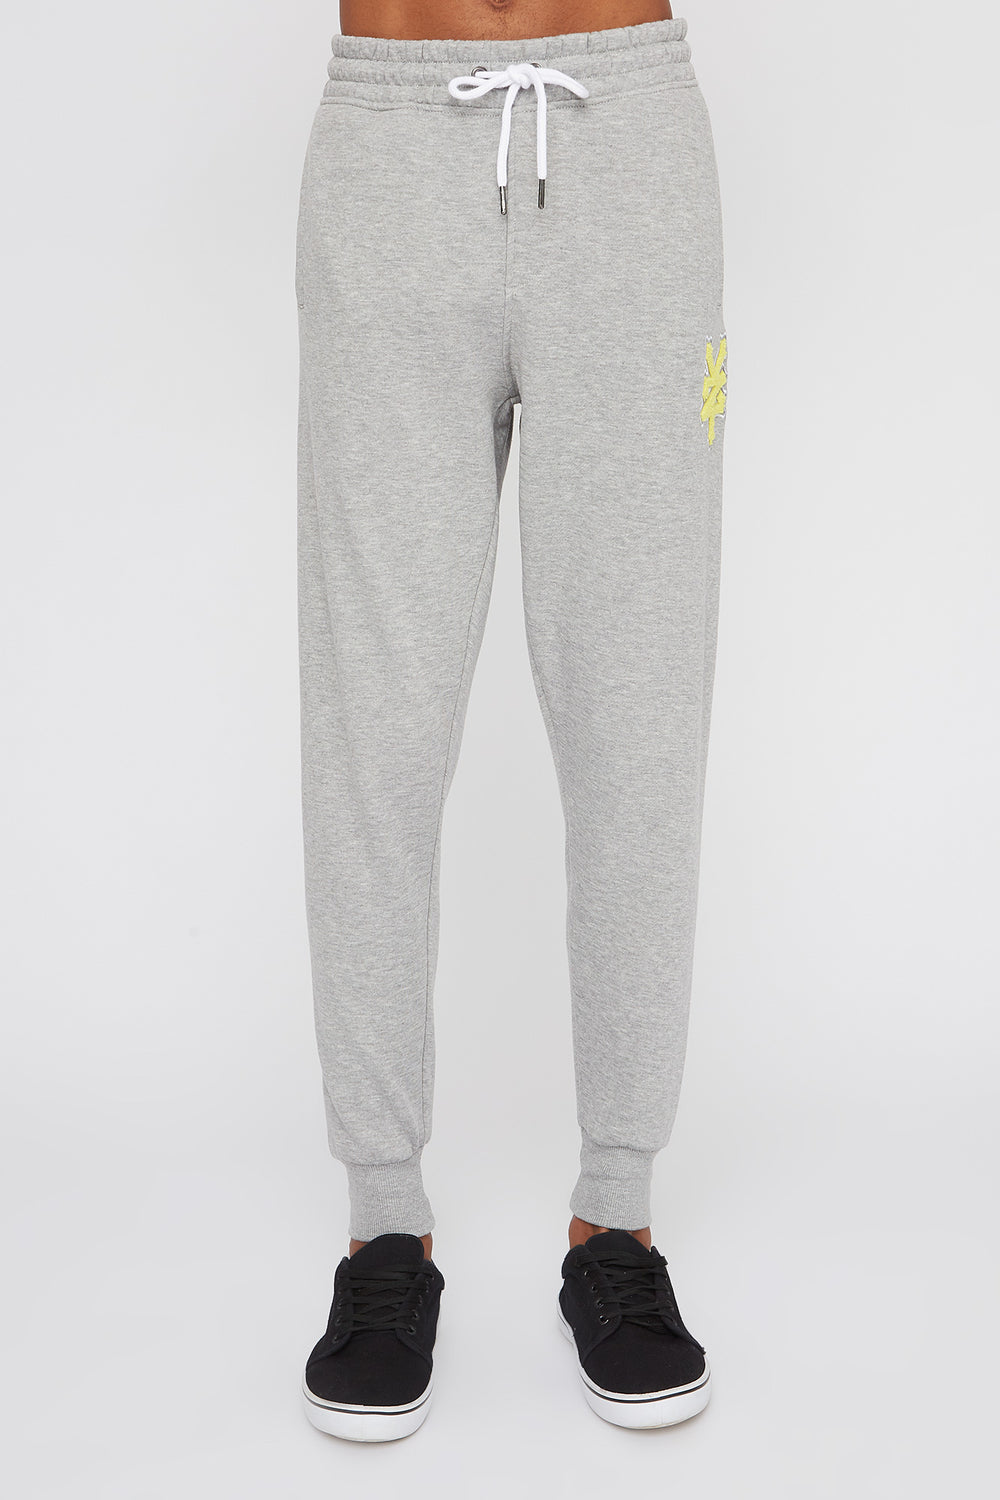 Zoo York Mens Chenille Patch Logo Joggers Heather Grey